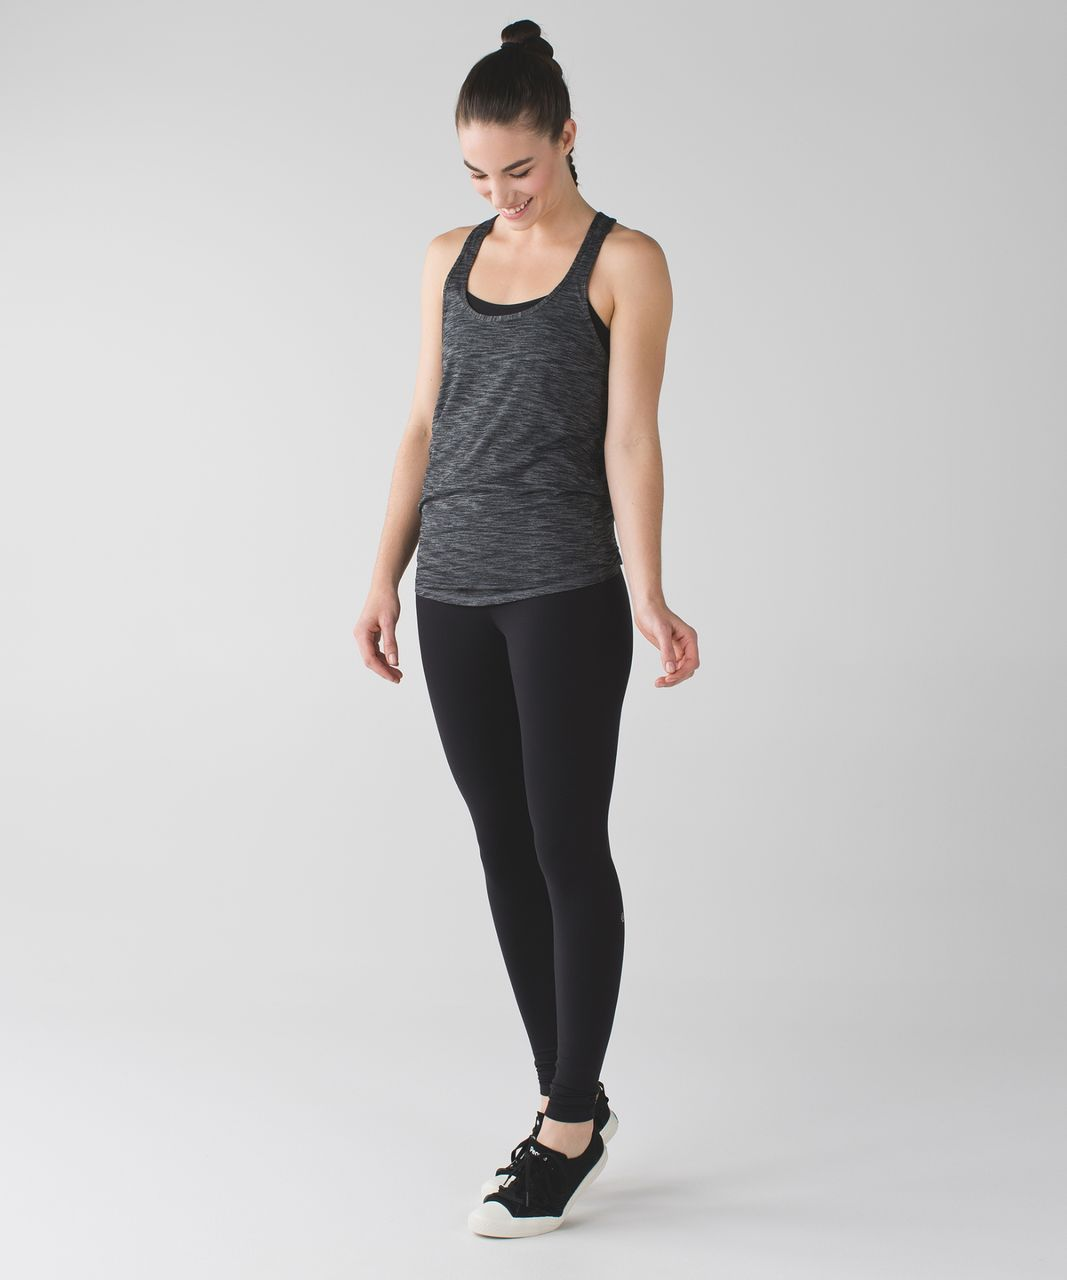 Lululemon Salute the Sun Tank - Heathered Black (First Release)